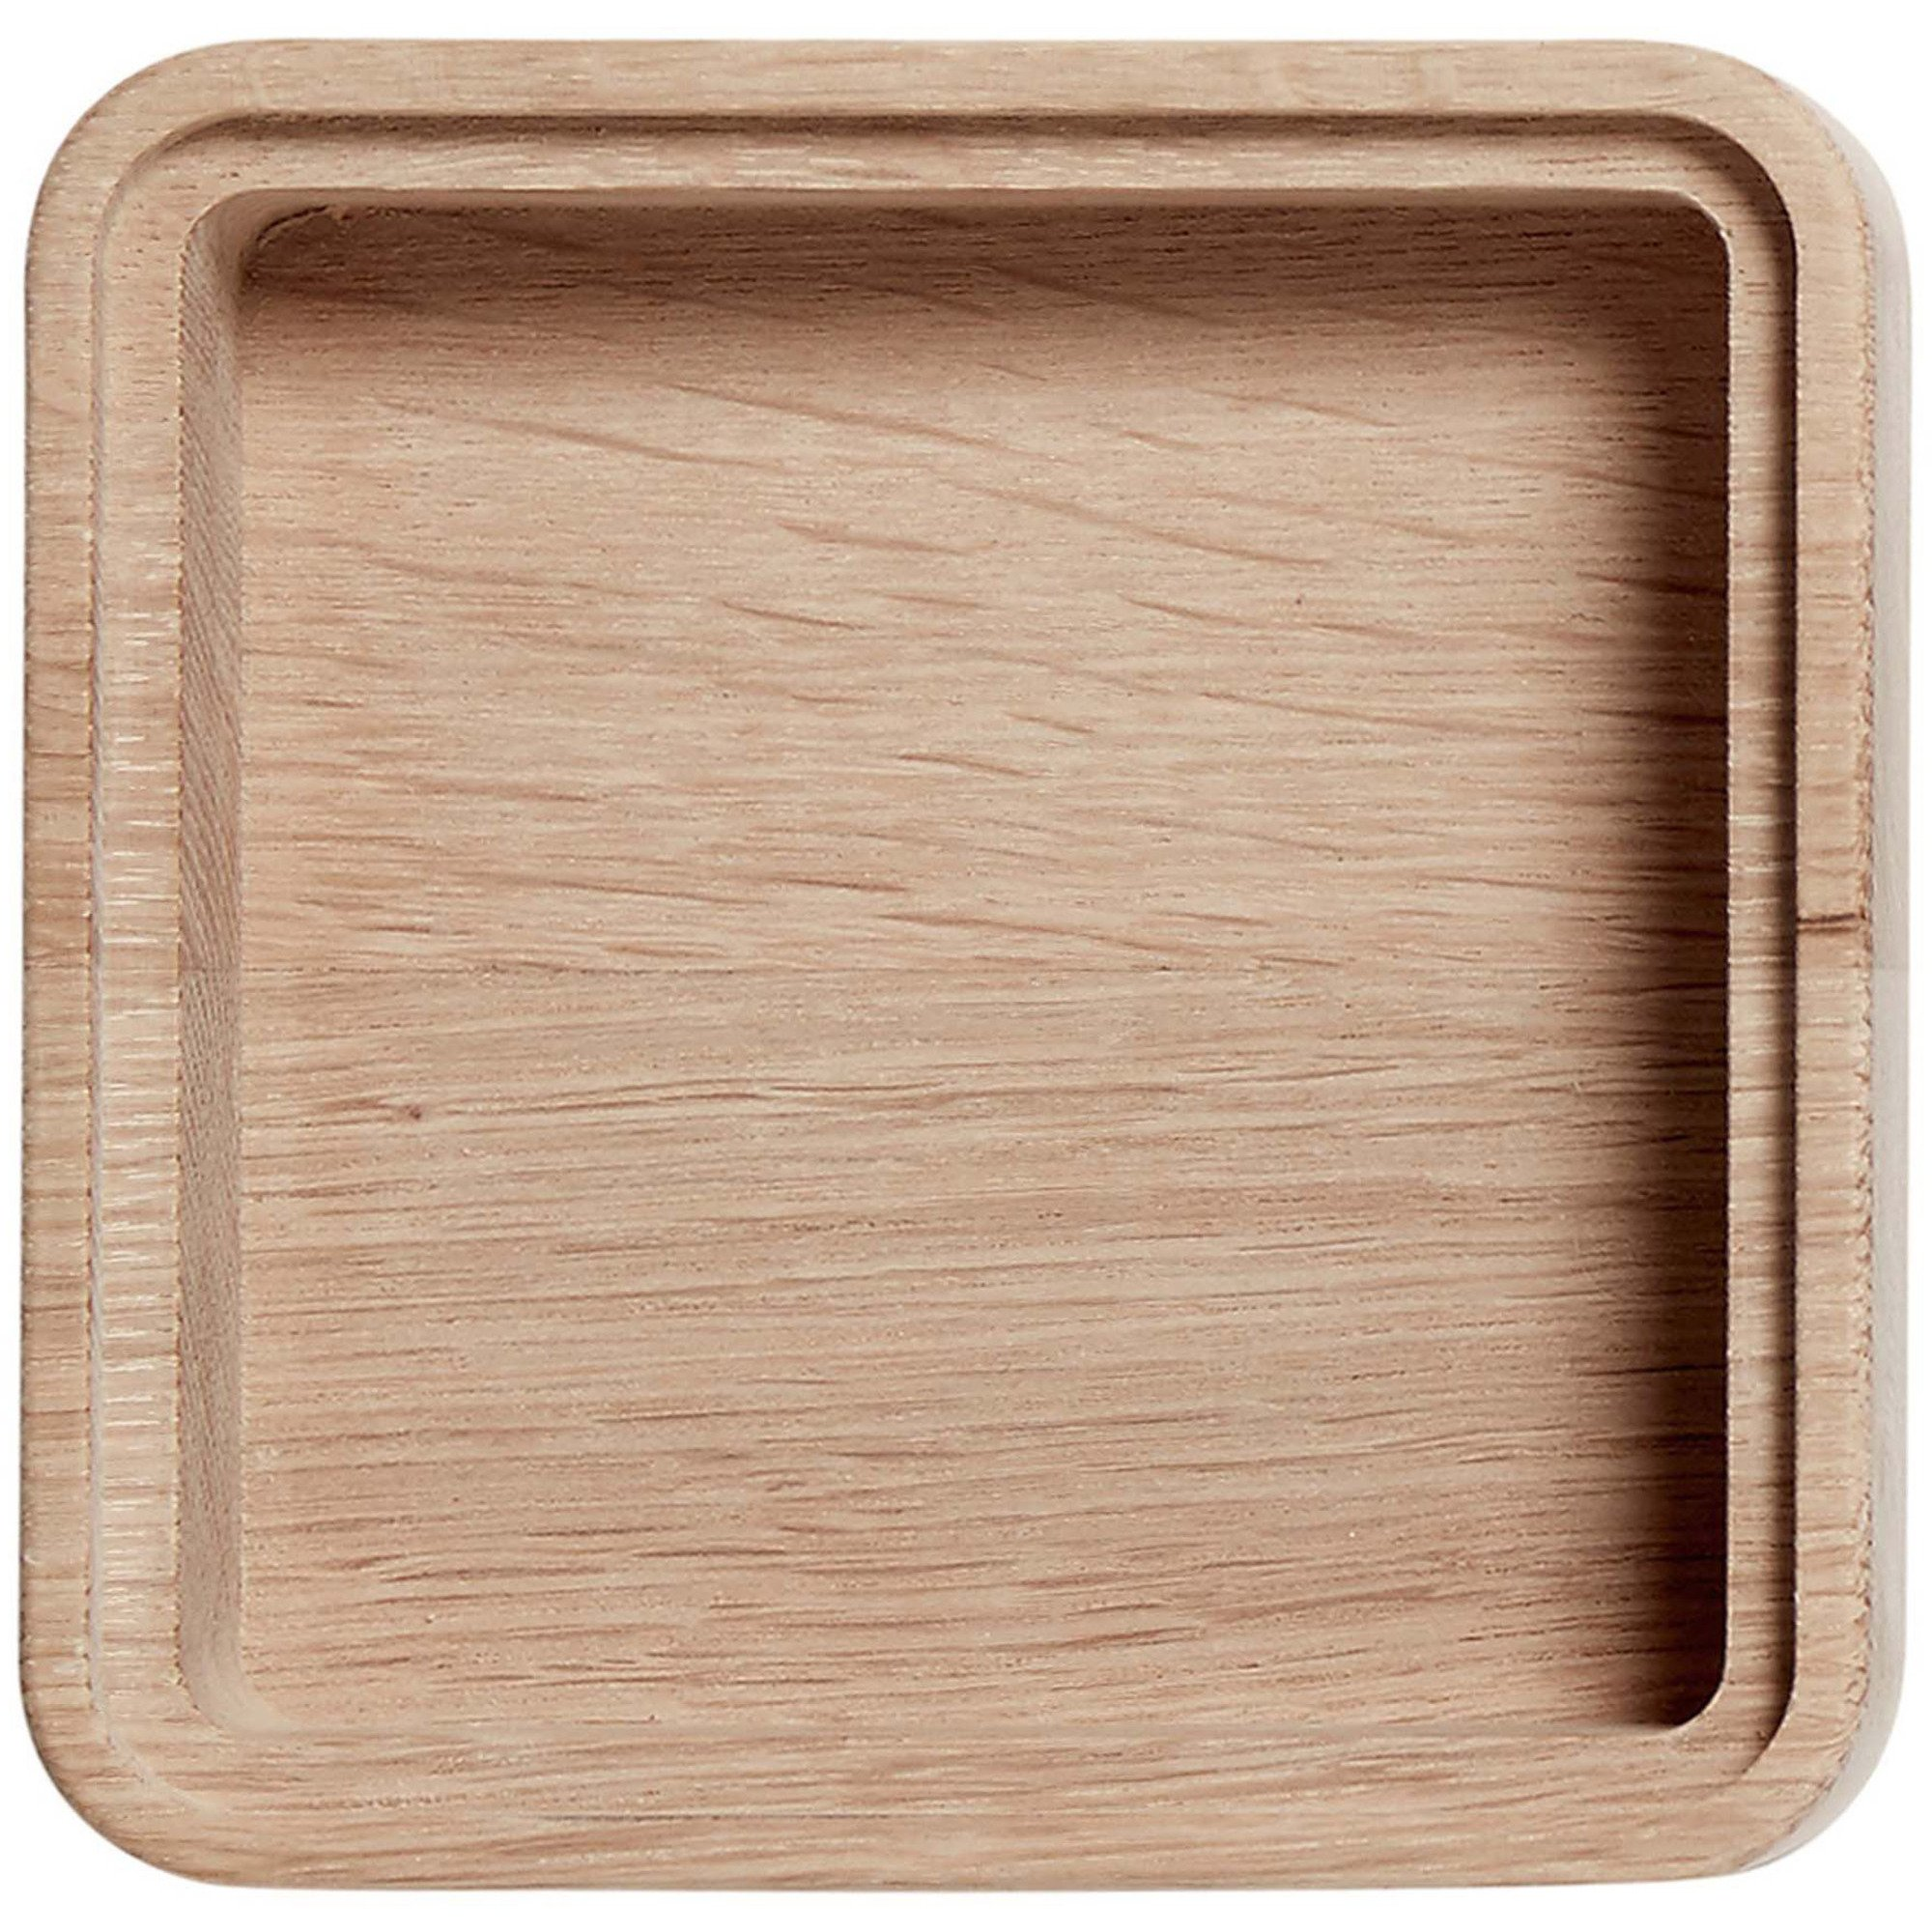 Bilde av Andersen Furniture Create Me Box 12 X 12 Cm Oak